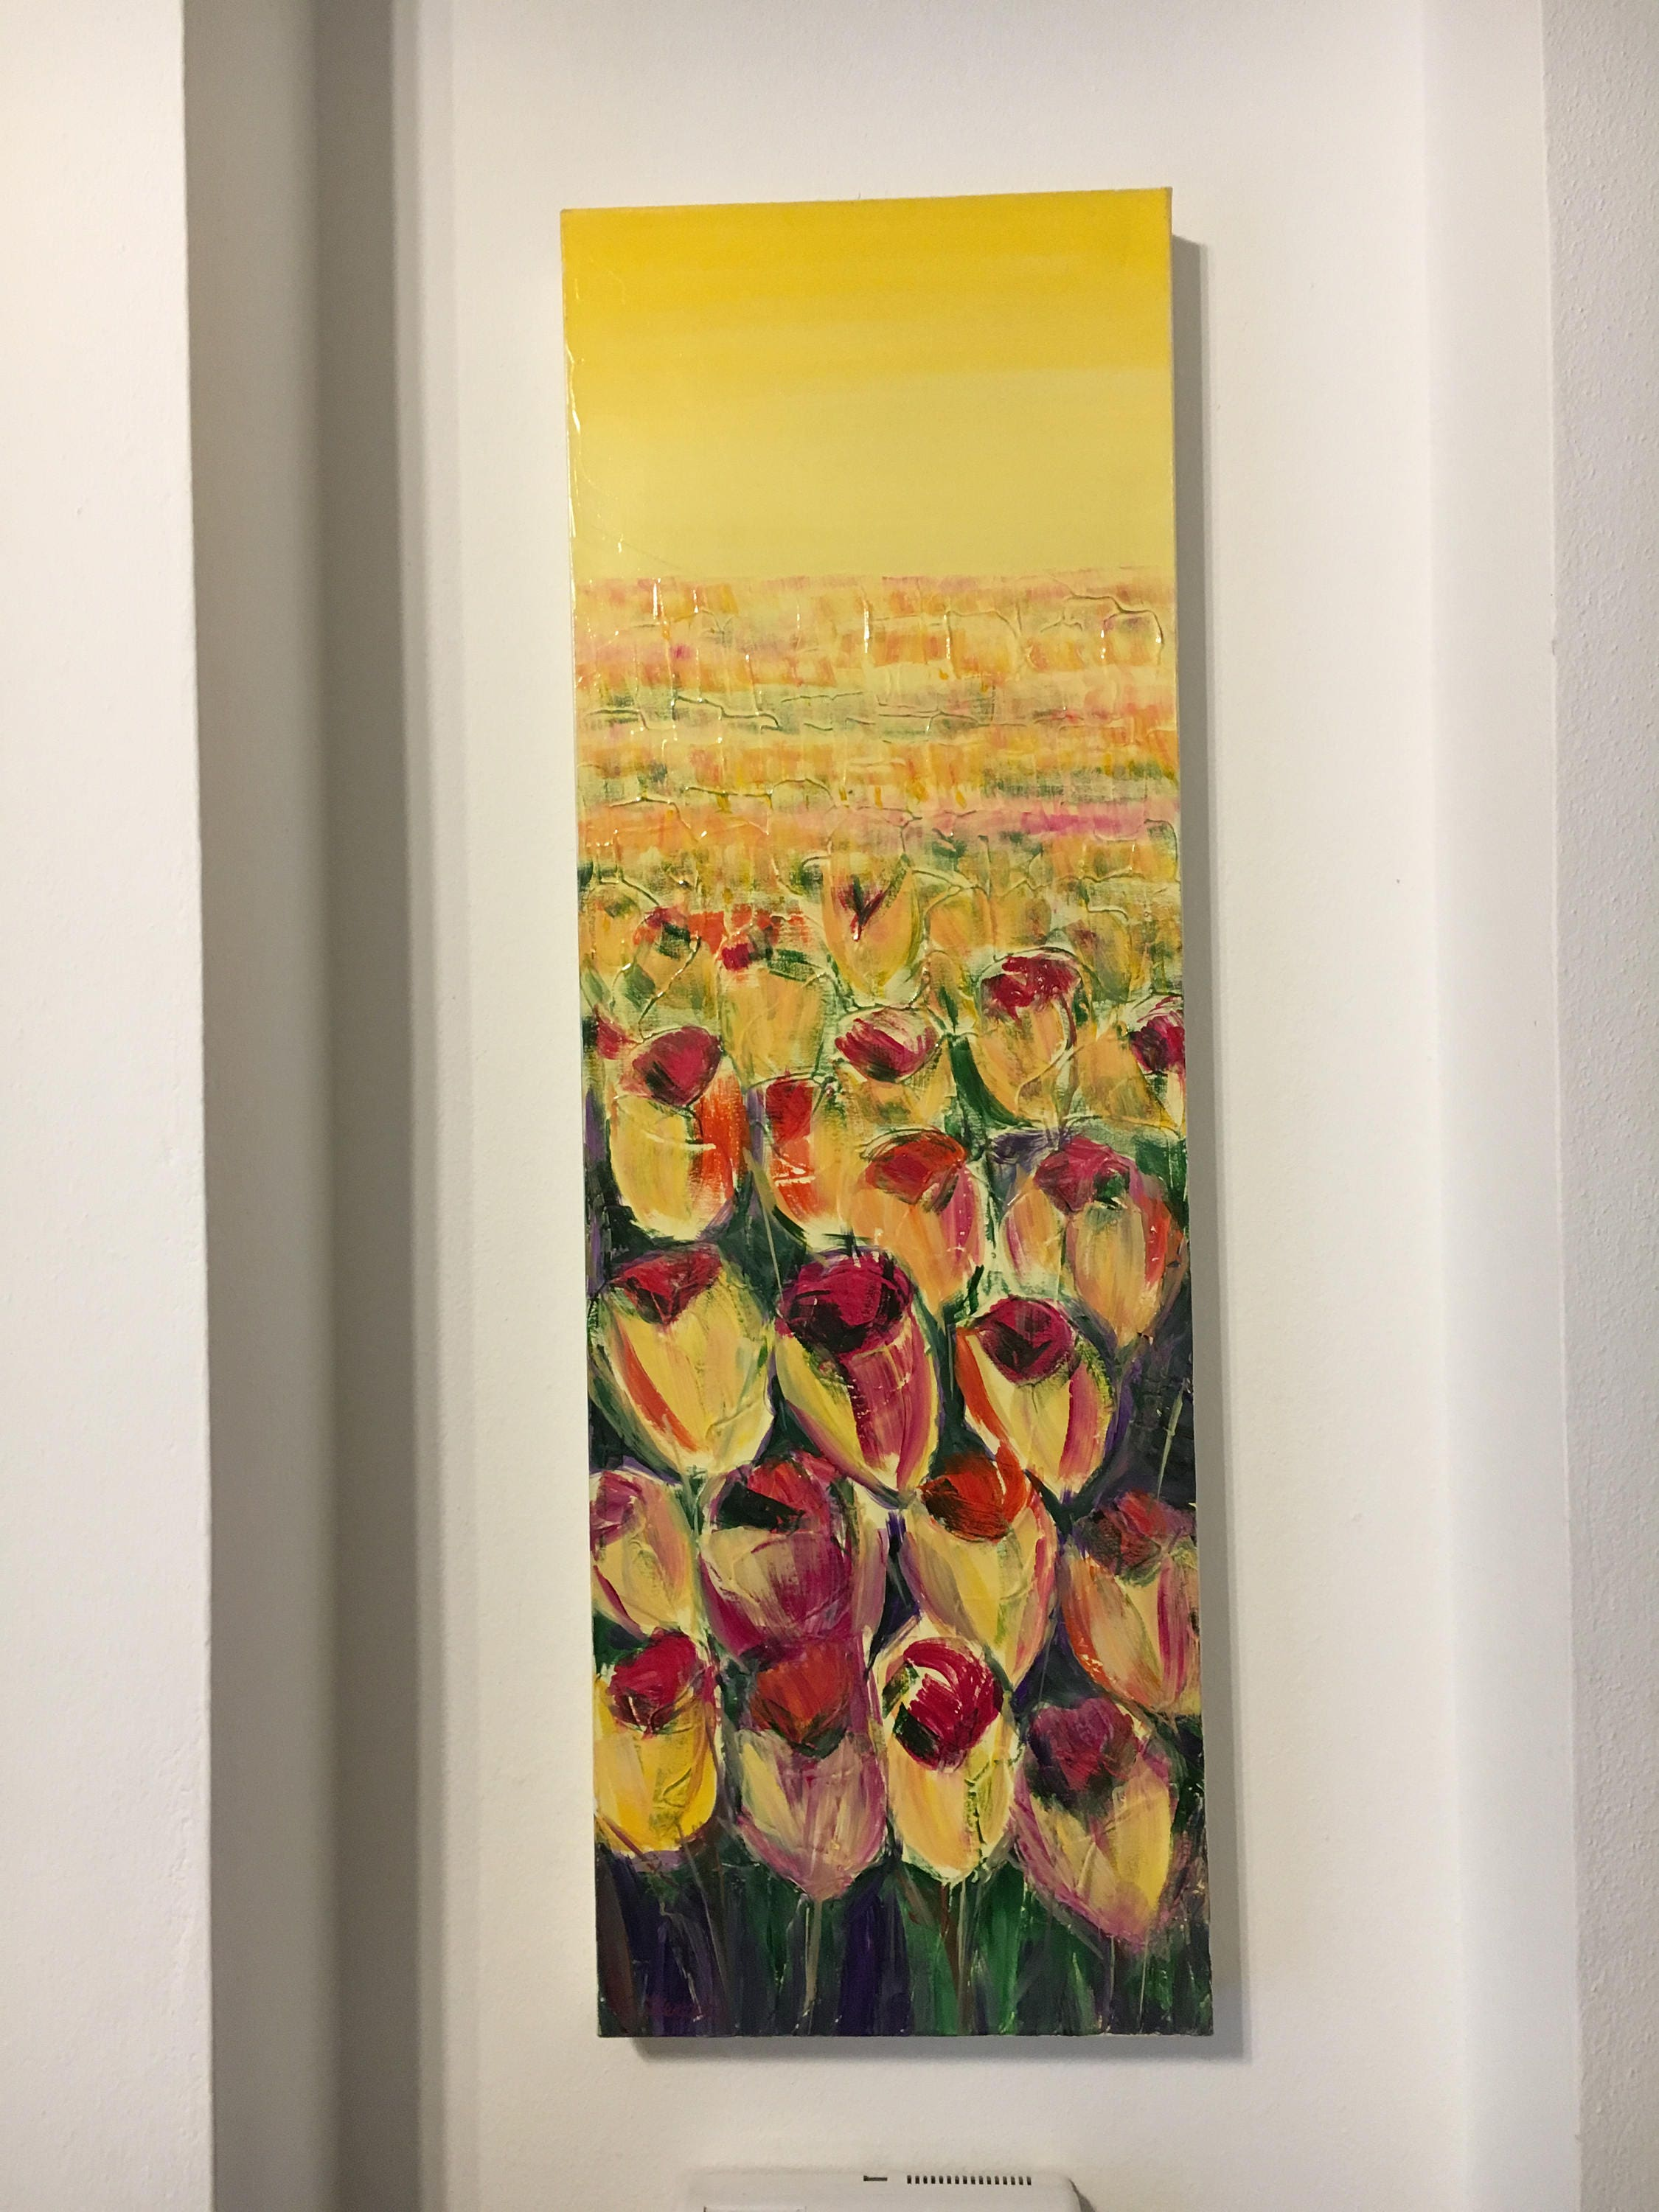 Flower picture narrow vertical wall art. Painted with tulips